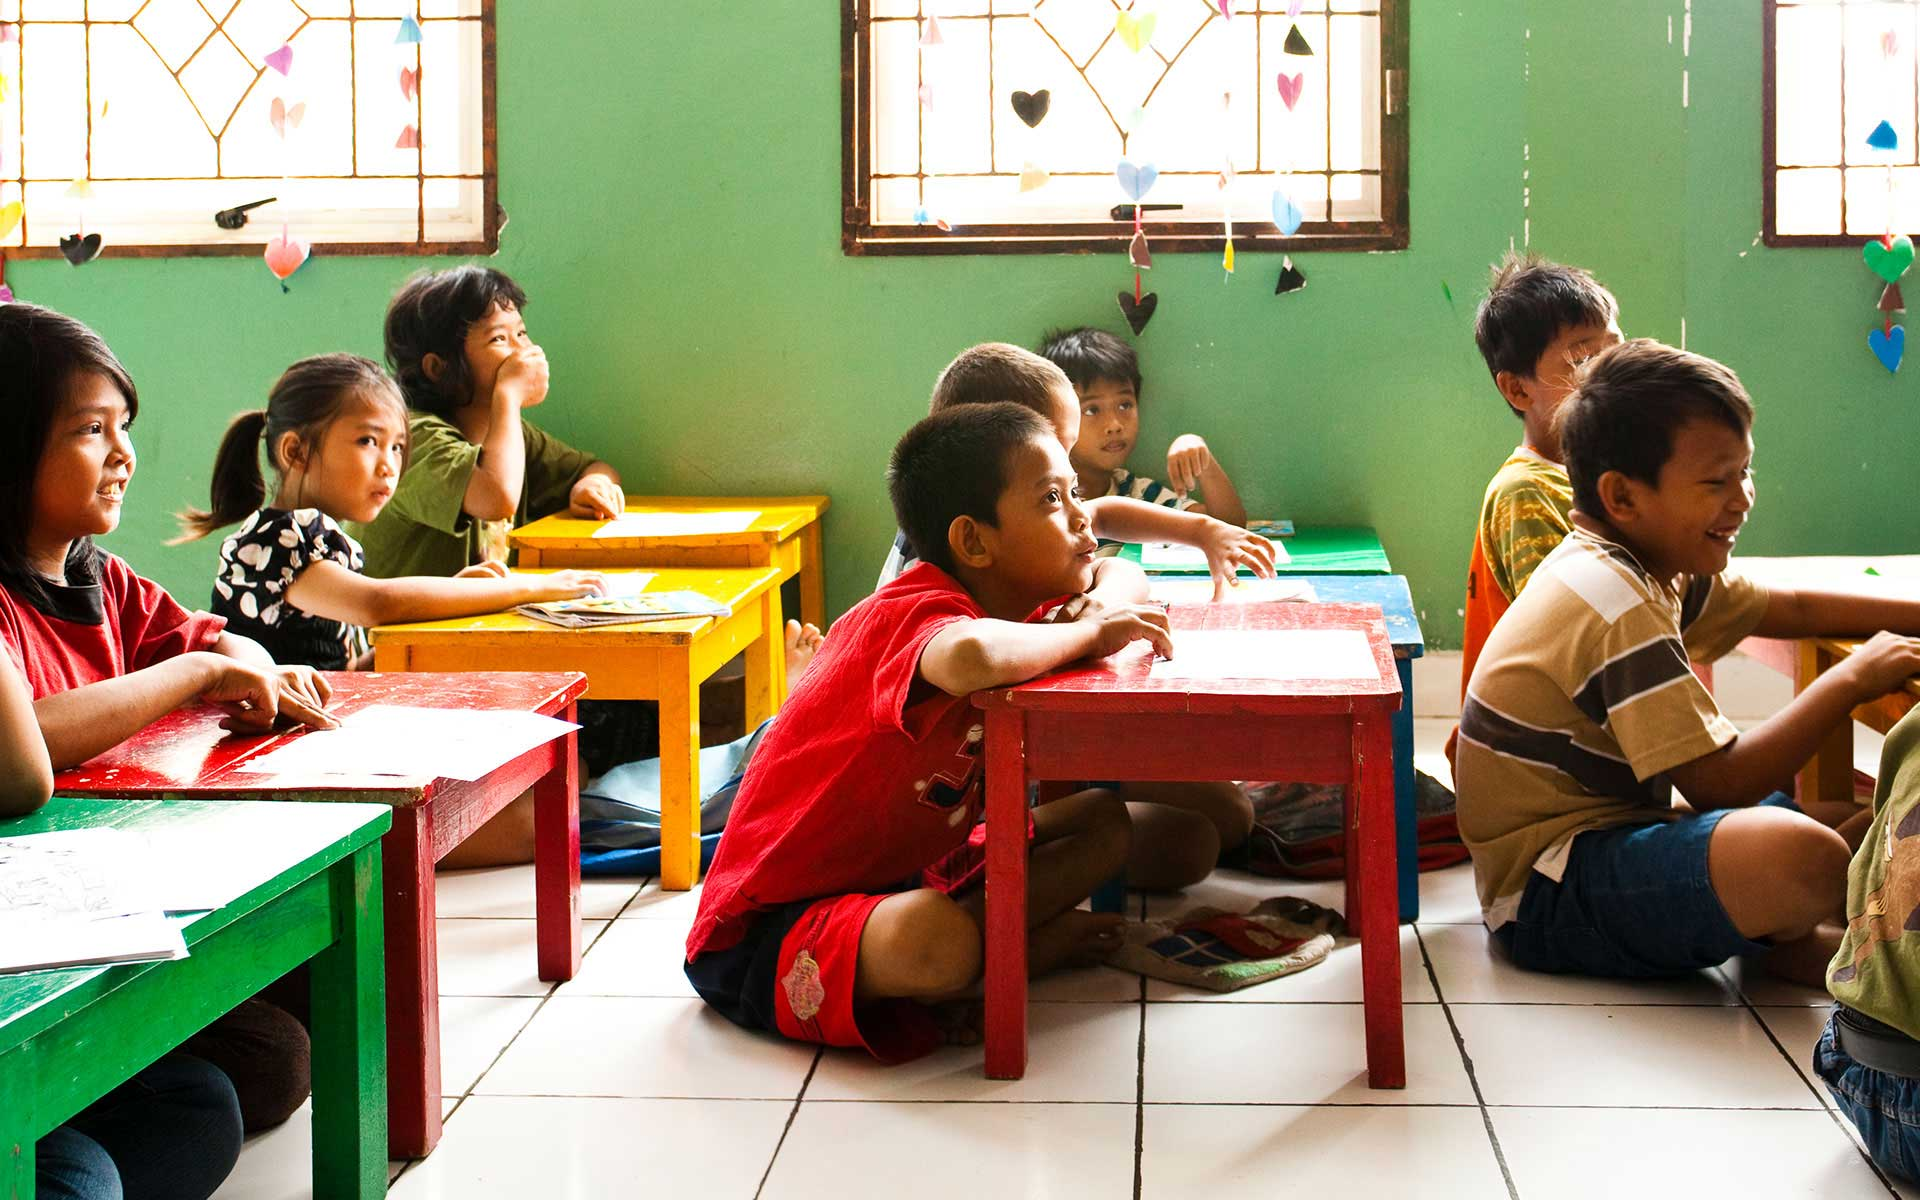 Children in Thailand learning in school